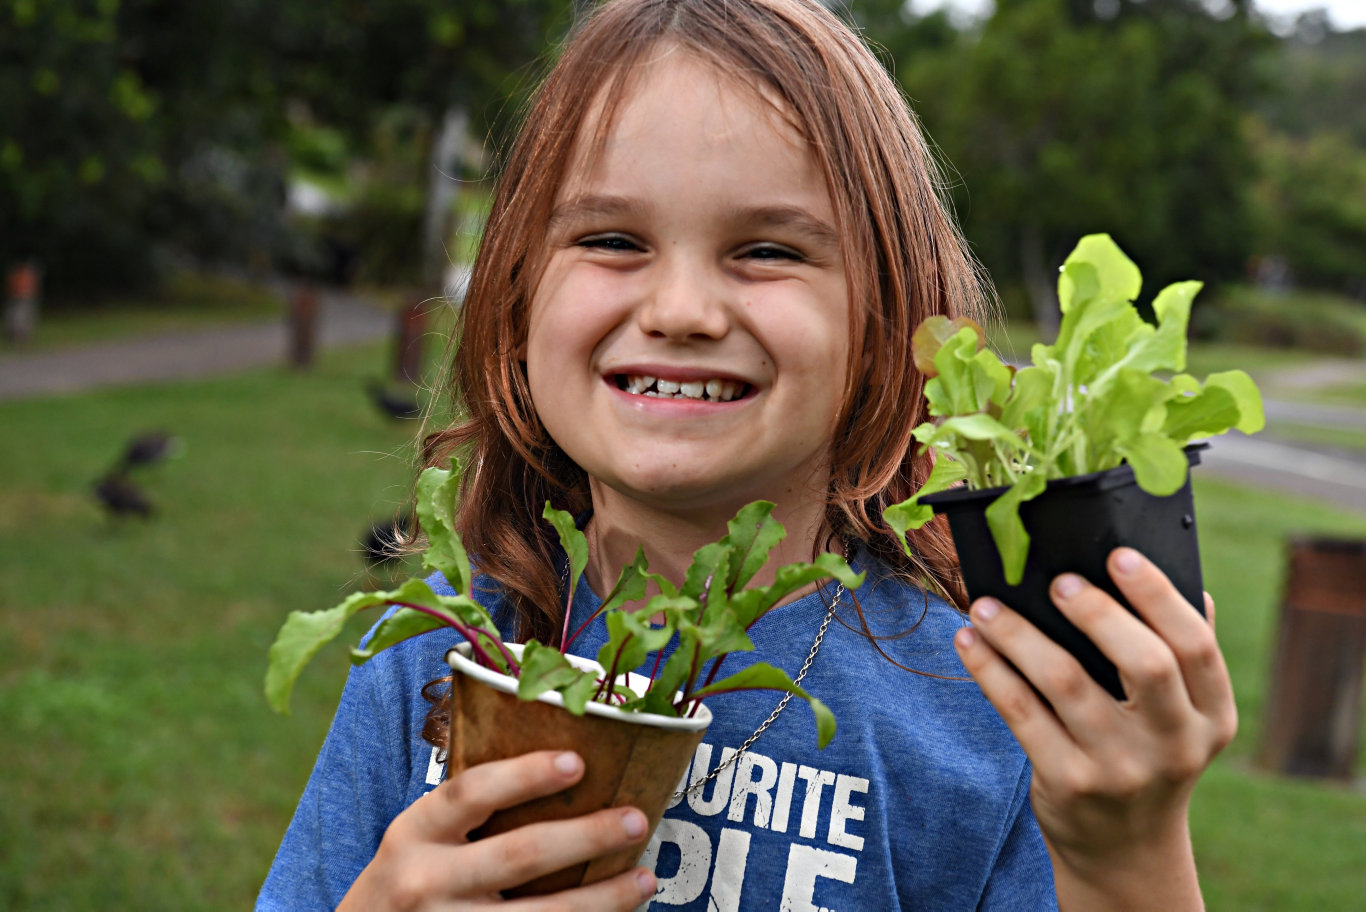 Jasper Sempf,7, has been growing vegetables for his family and the community during the lockdown.